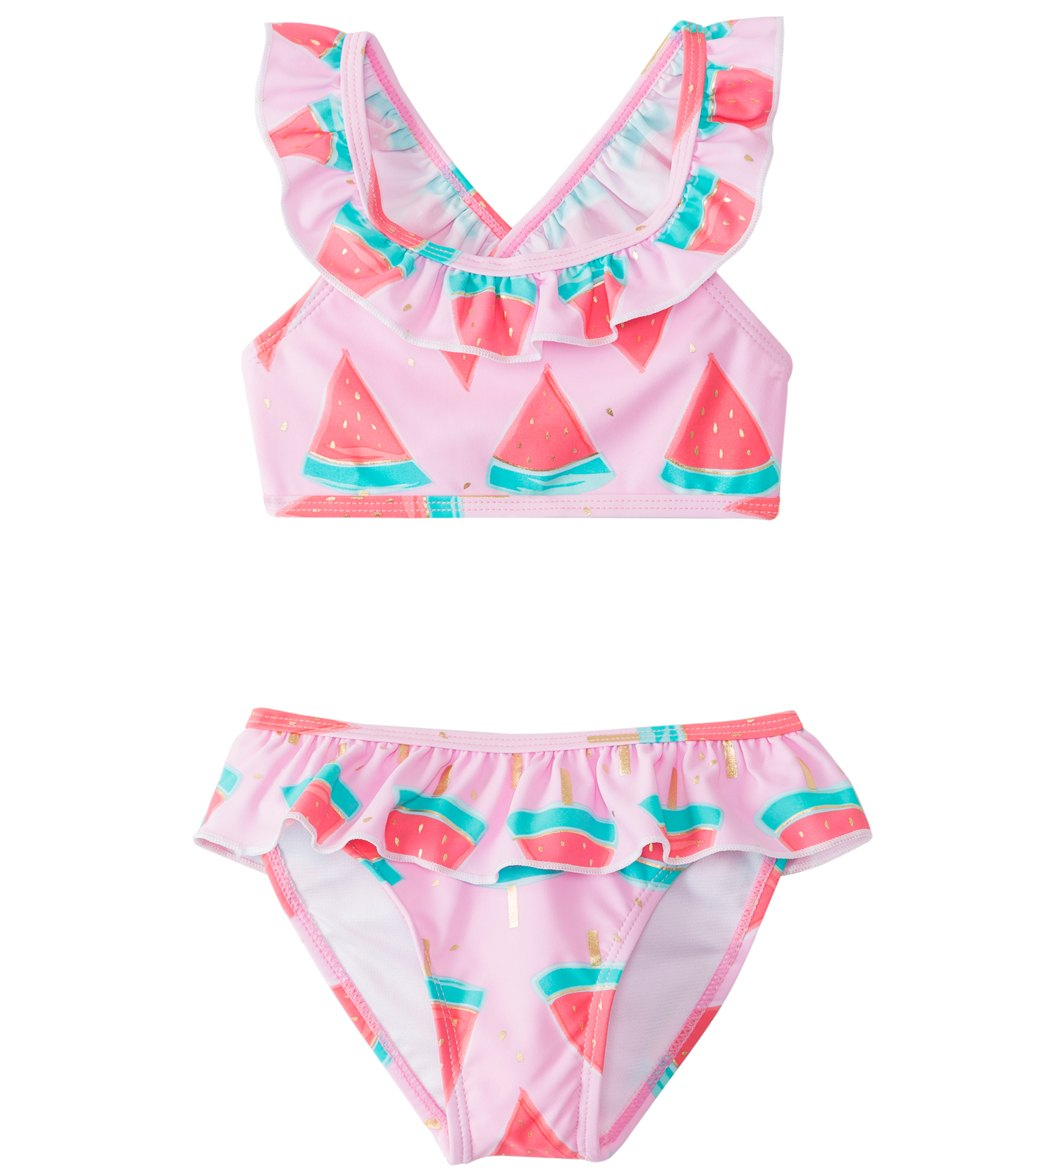 e718e114371 Snapper Rock Girls' Watermelon Ruffle Bikini Set (2T-10) at SwimOutlet.com